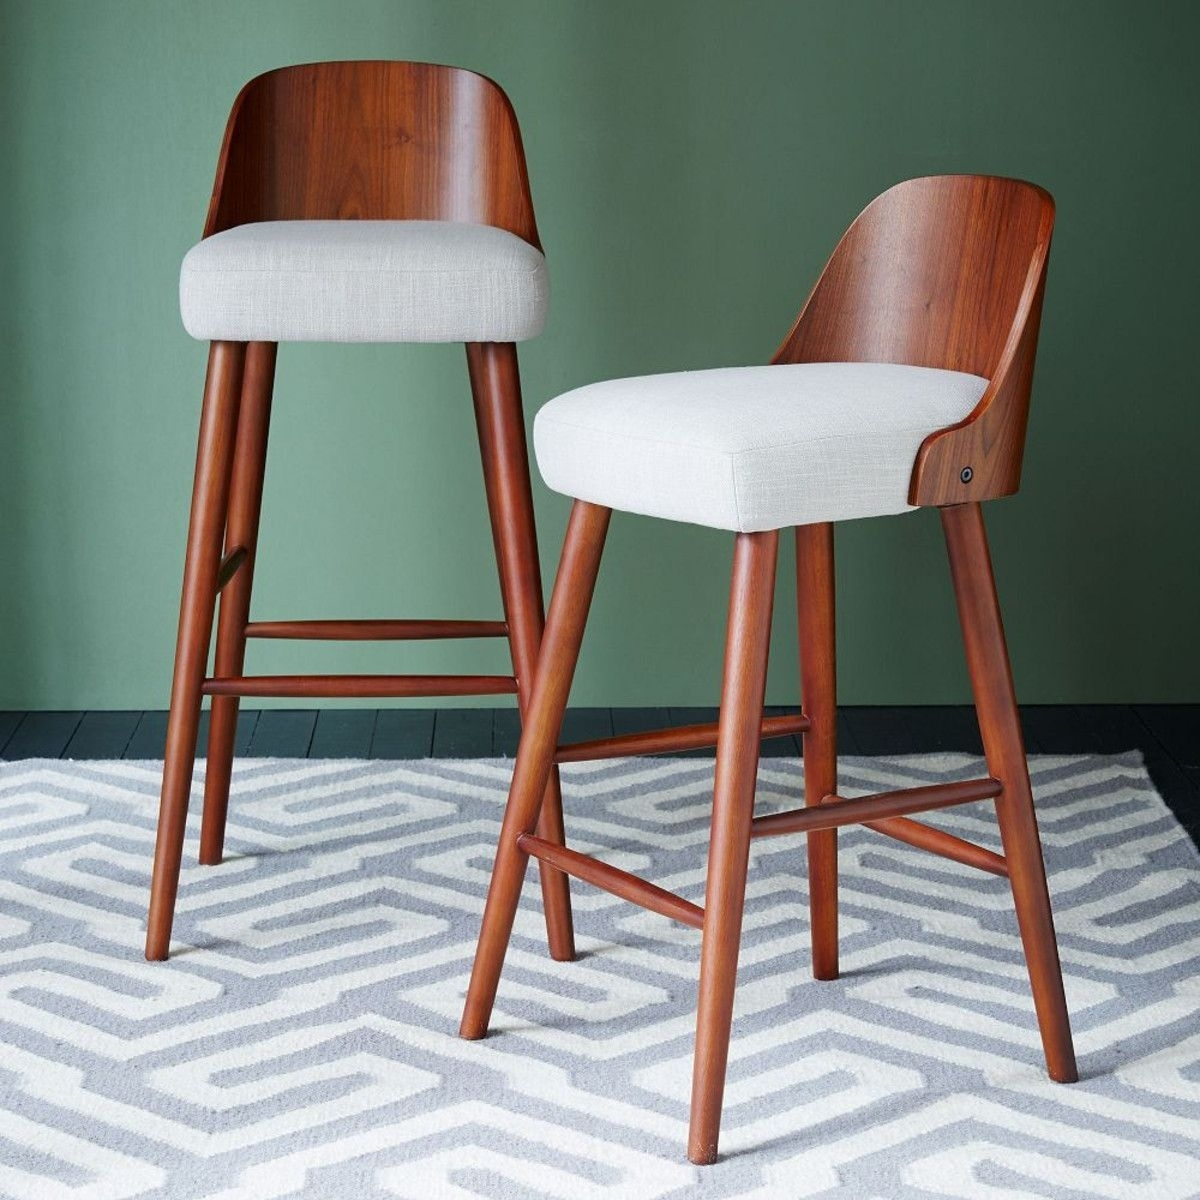 Image of: Curved Back Bar Stool Ideas On Foter